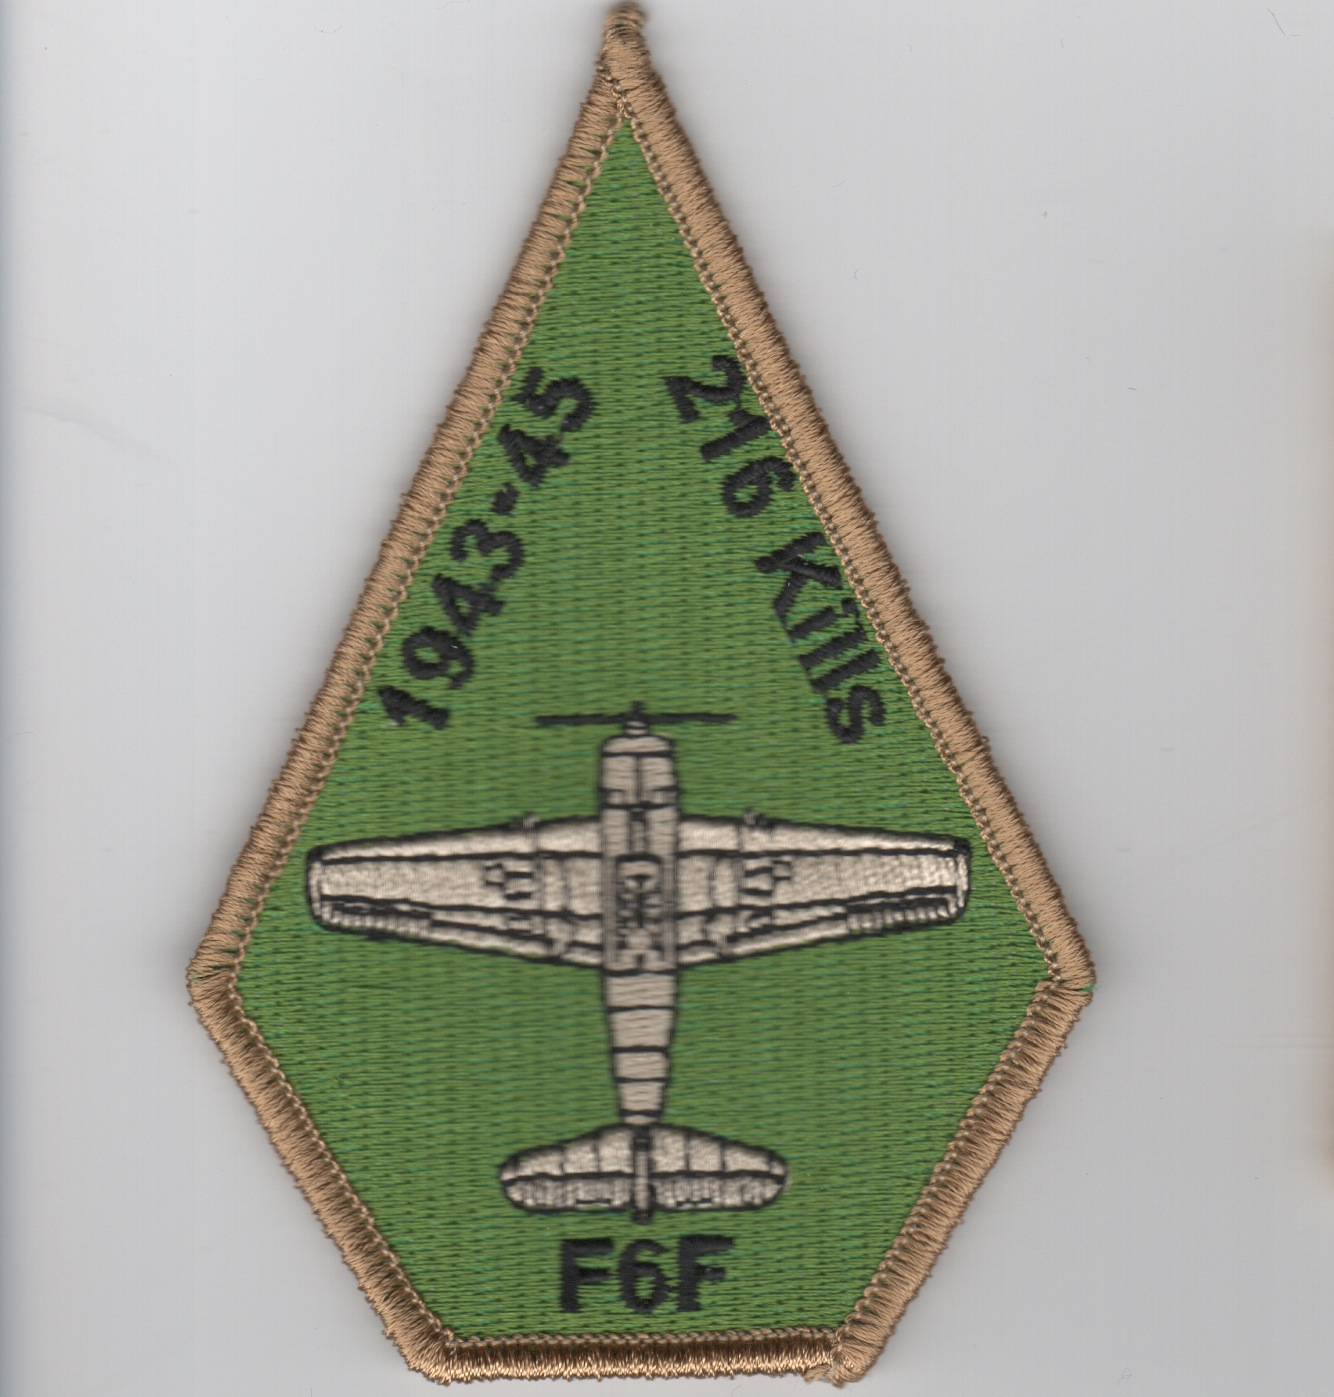 VF/VFA-2 'F6F 216 Kills' Coffin Patch